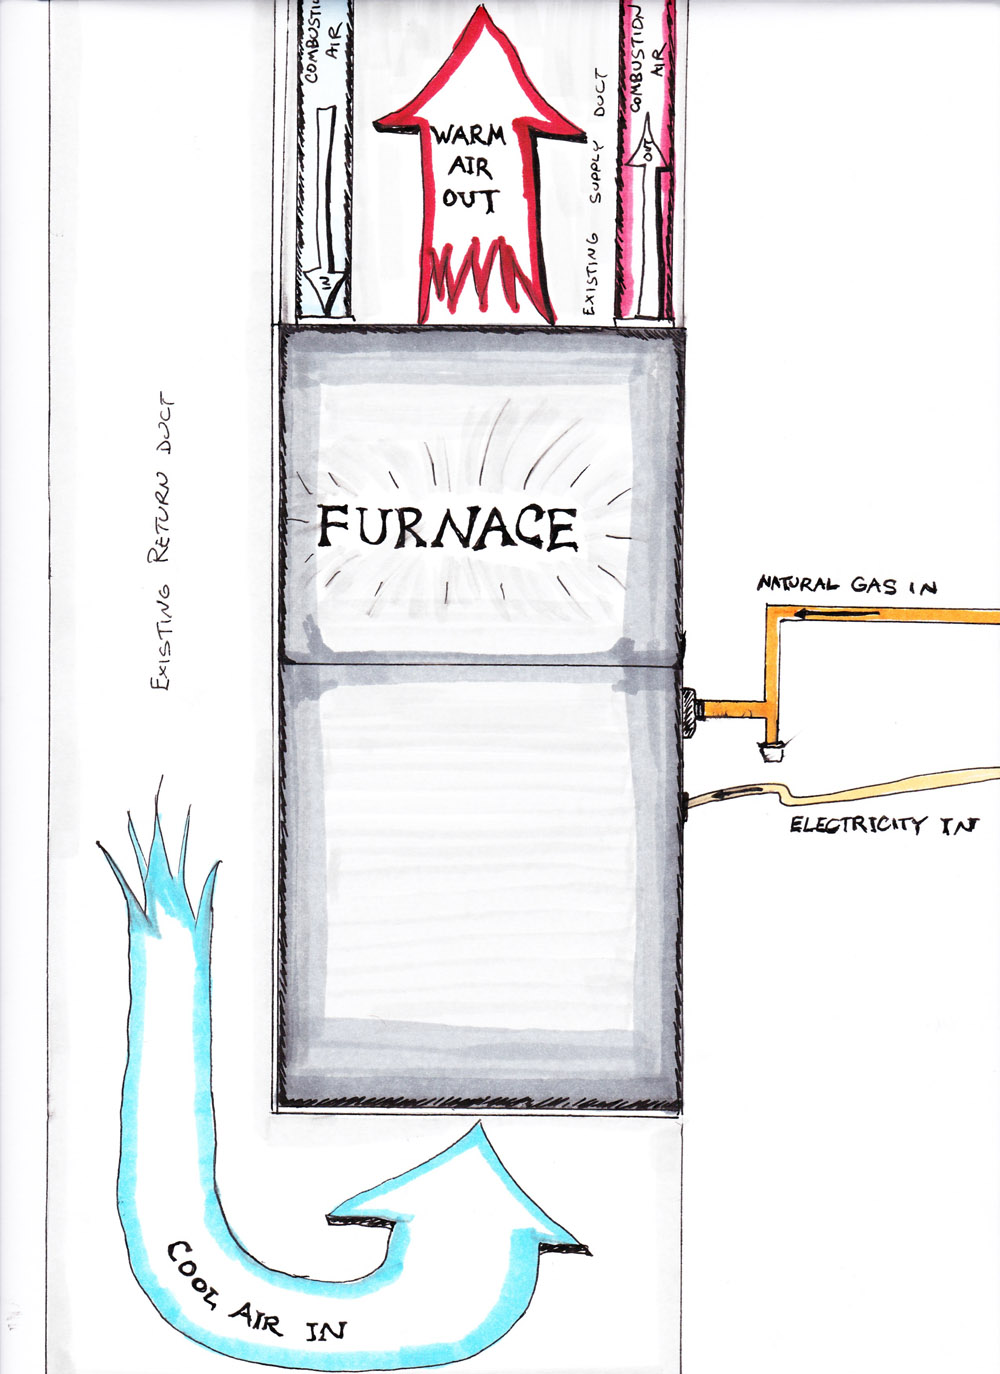 How to Replace Your Own Furnace | Mr. Money Mustache Unicorn Cubicle Wiring Diagram on